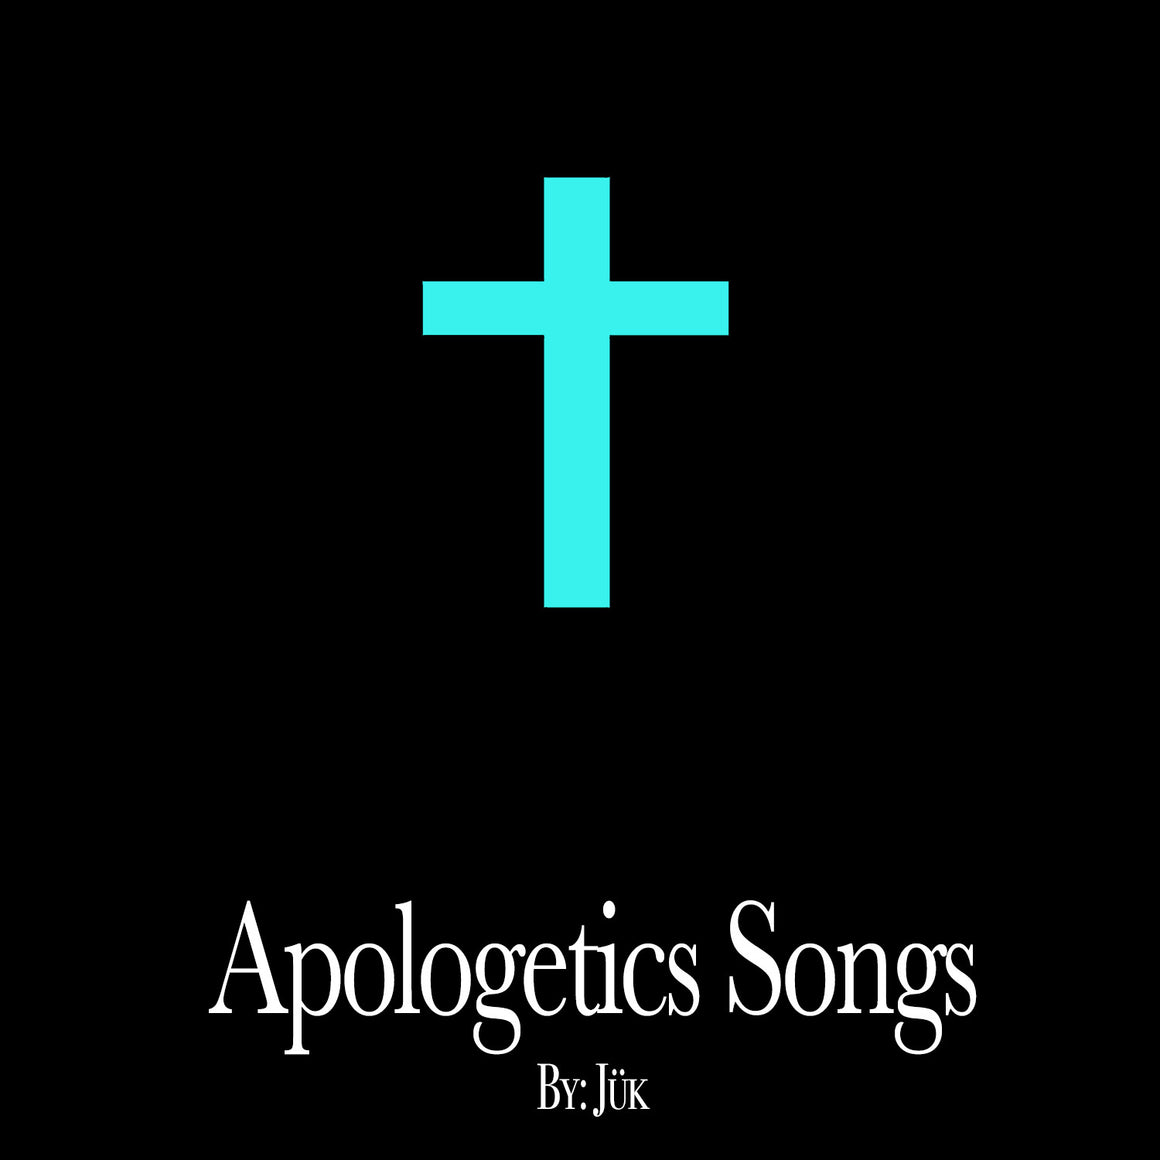 Pre-order Apologetics Songs Music Album